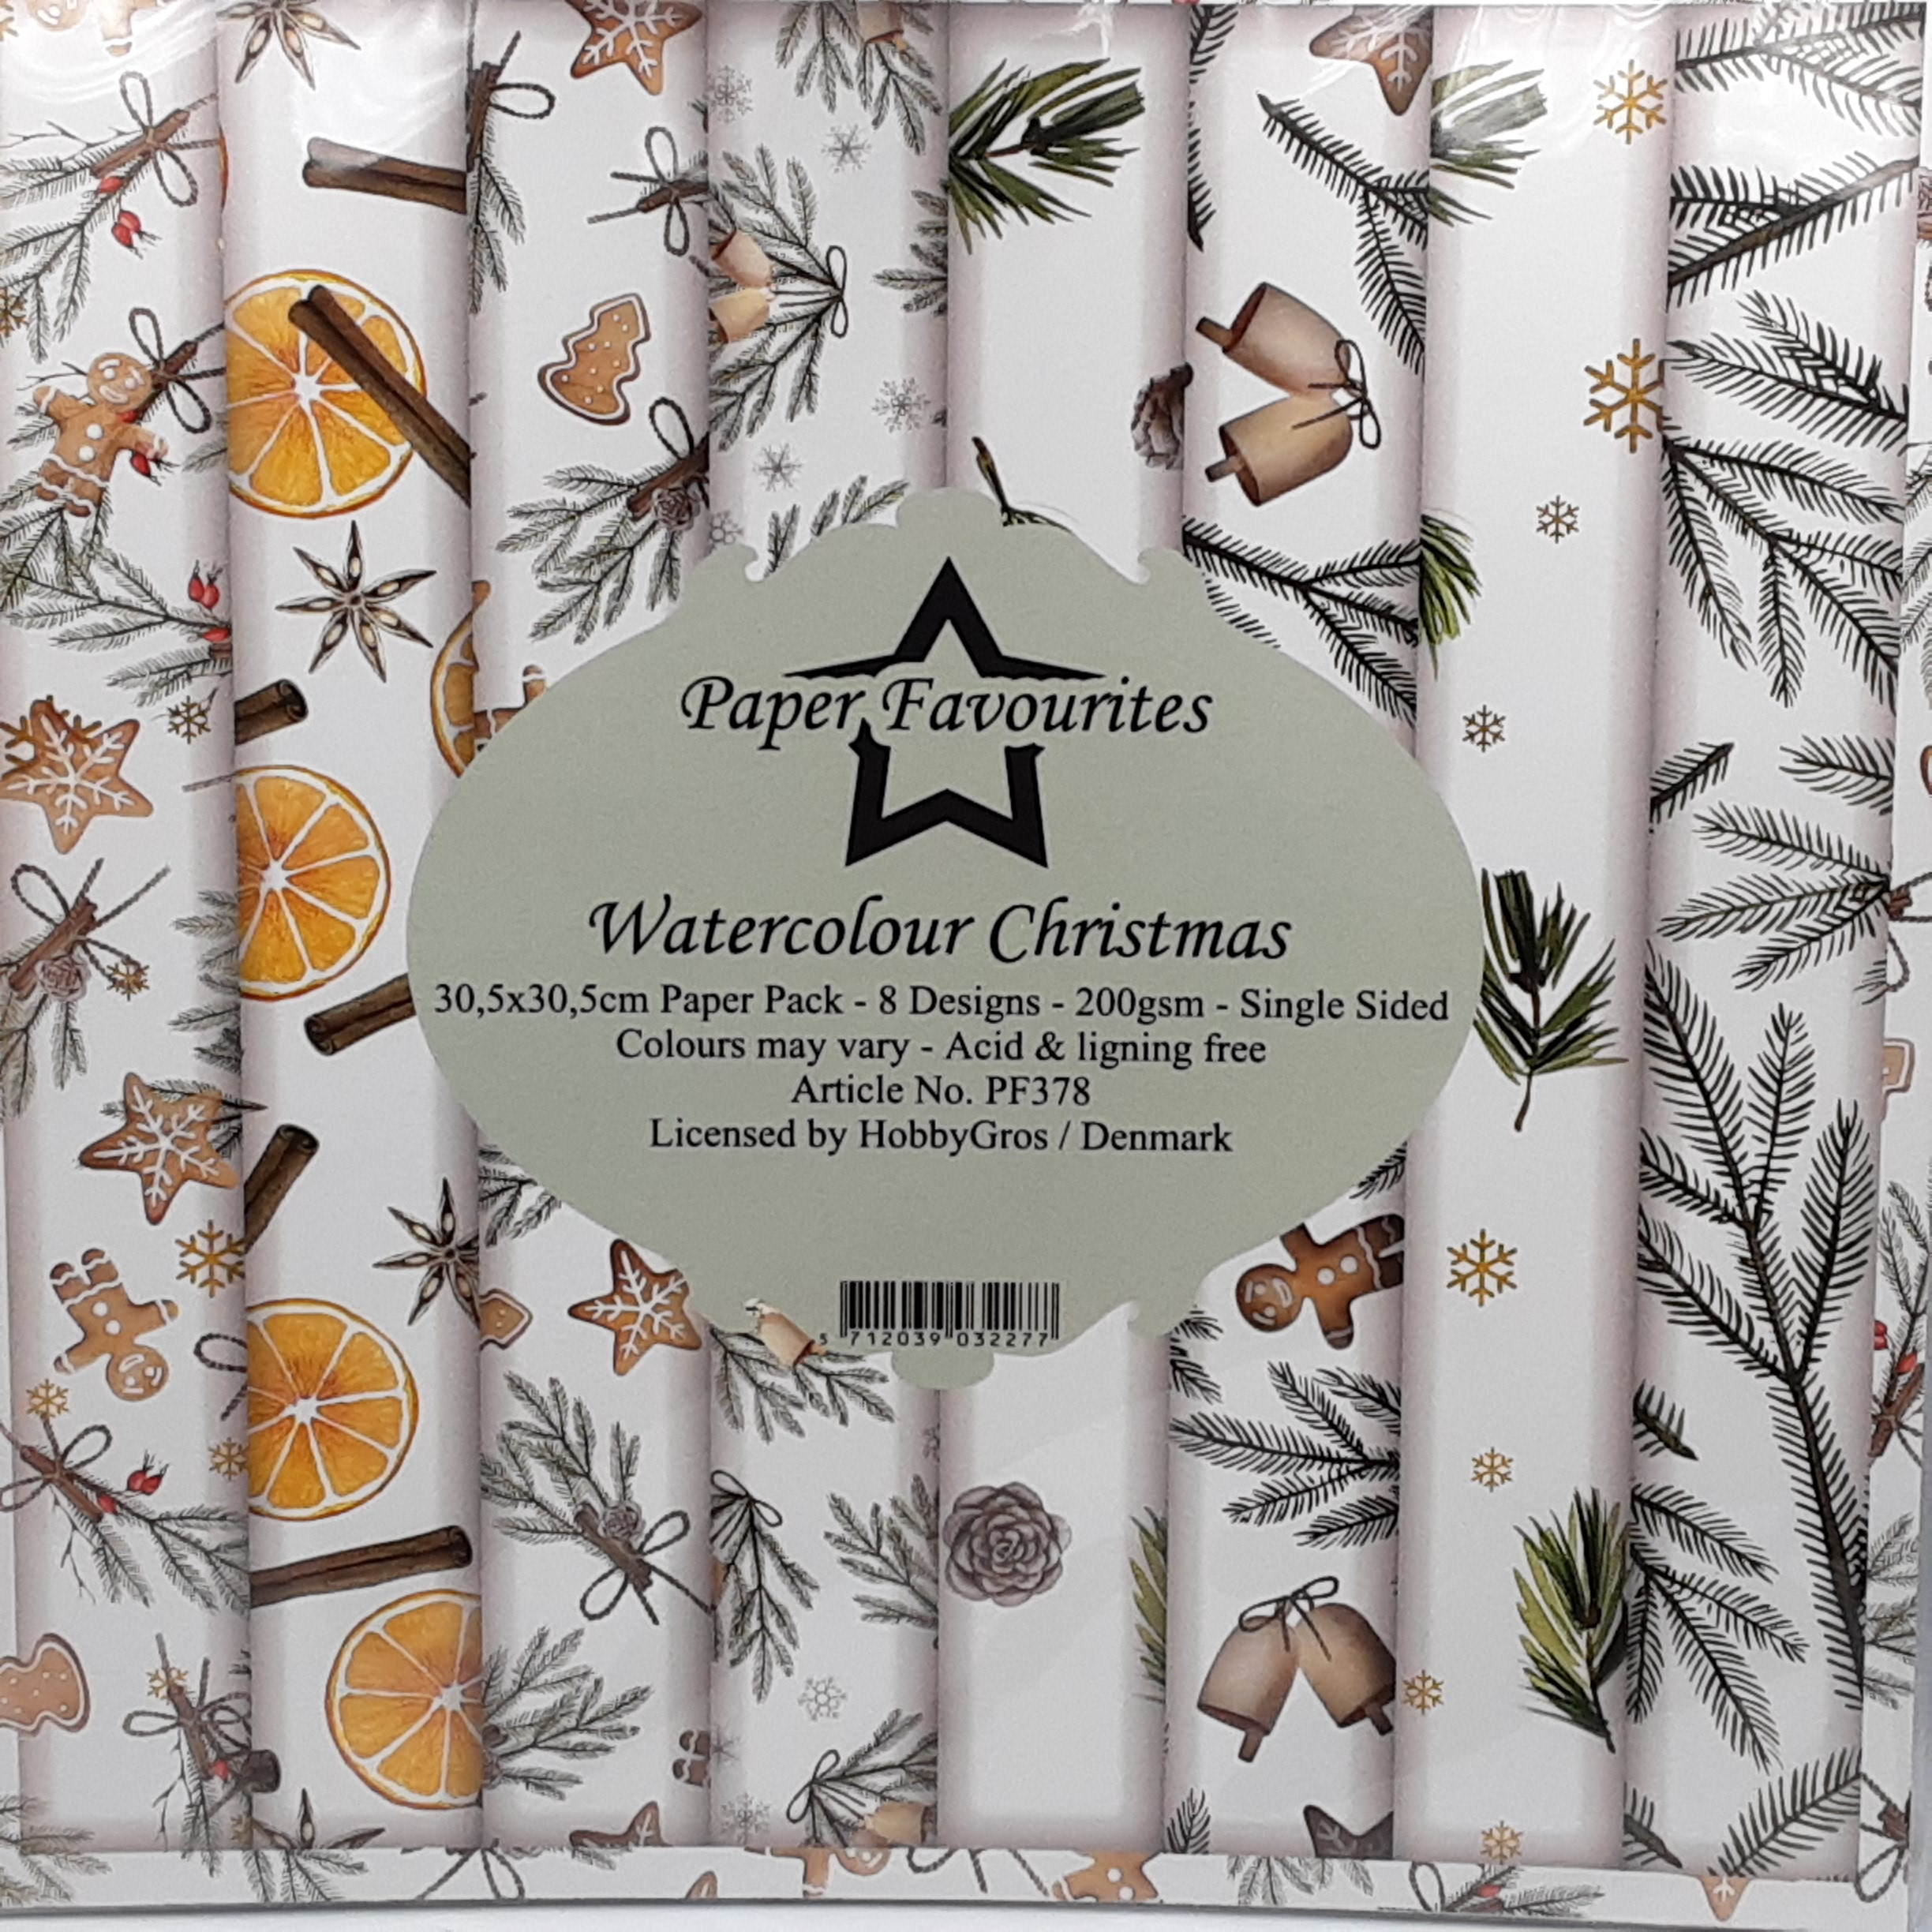 Watercolor christmas 12x12 inch paperpack